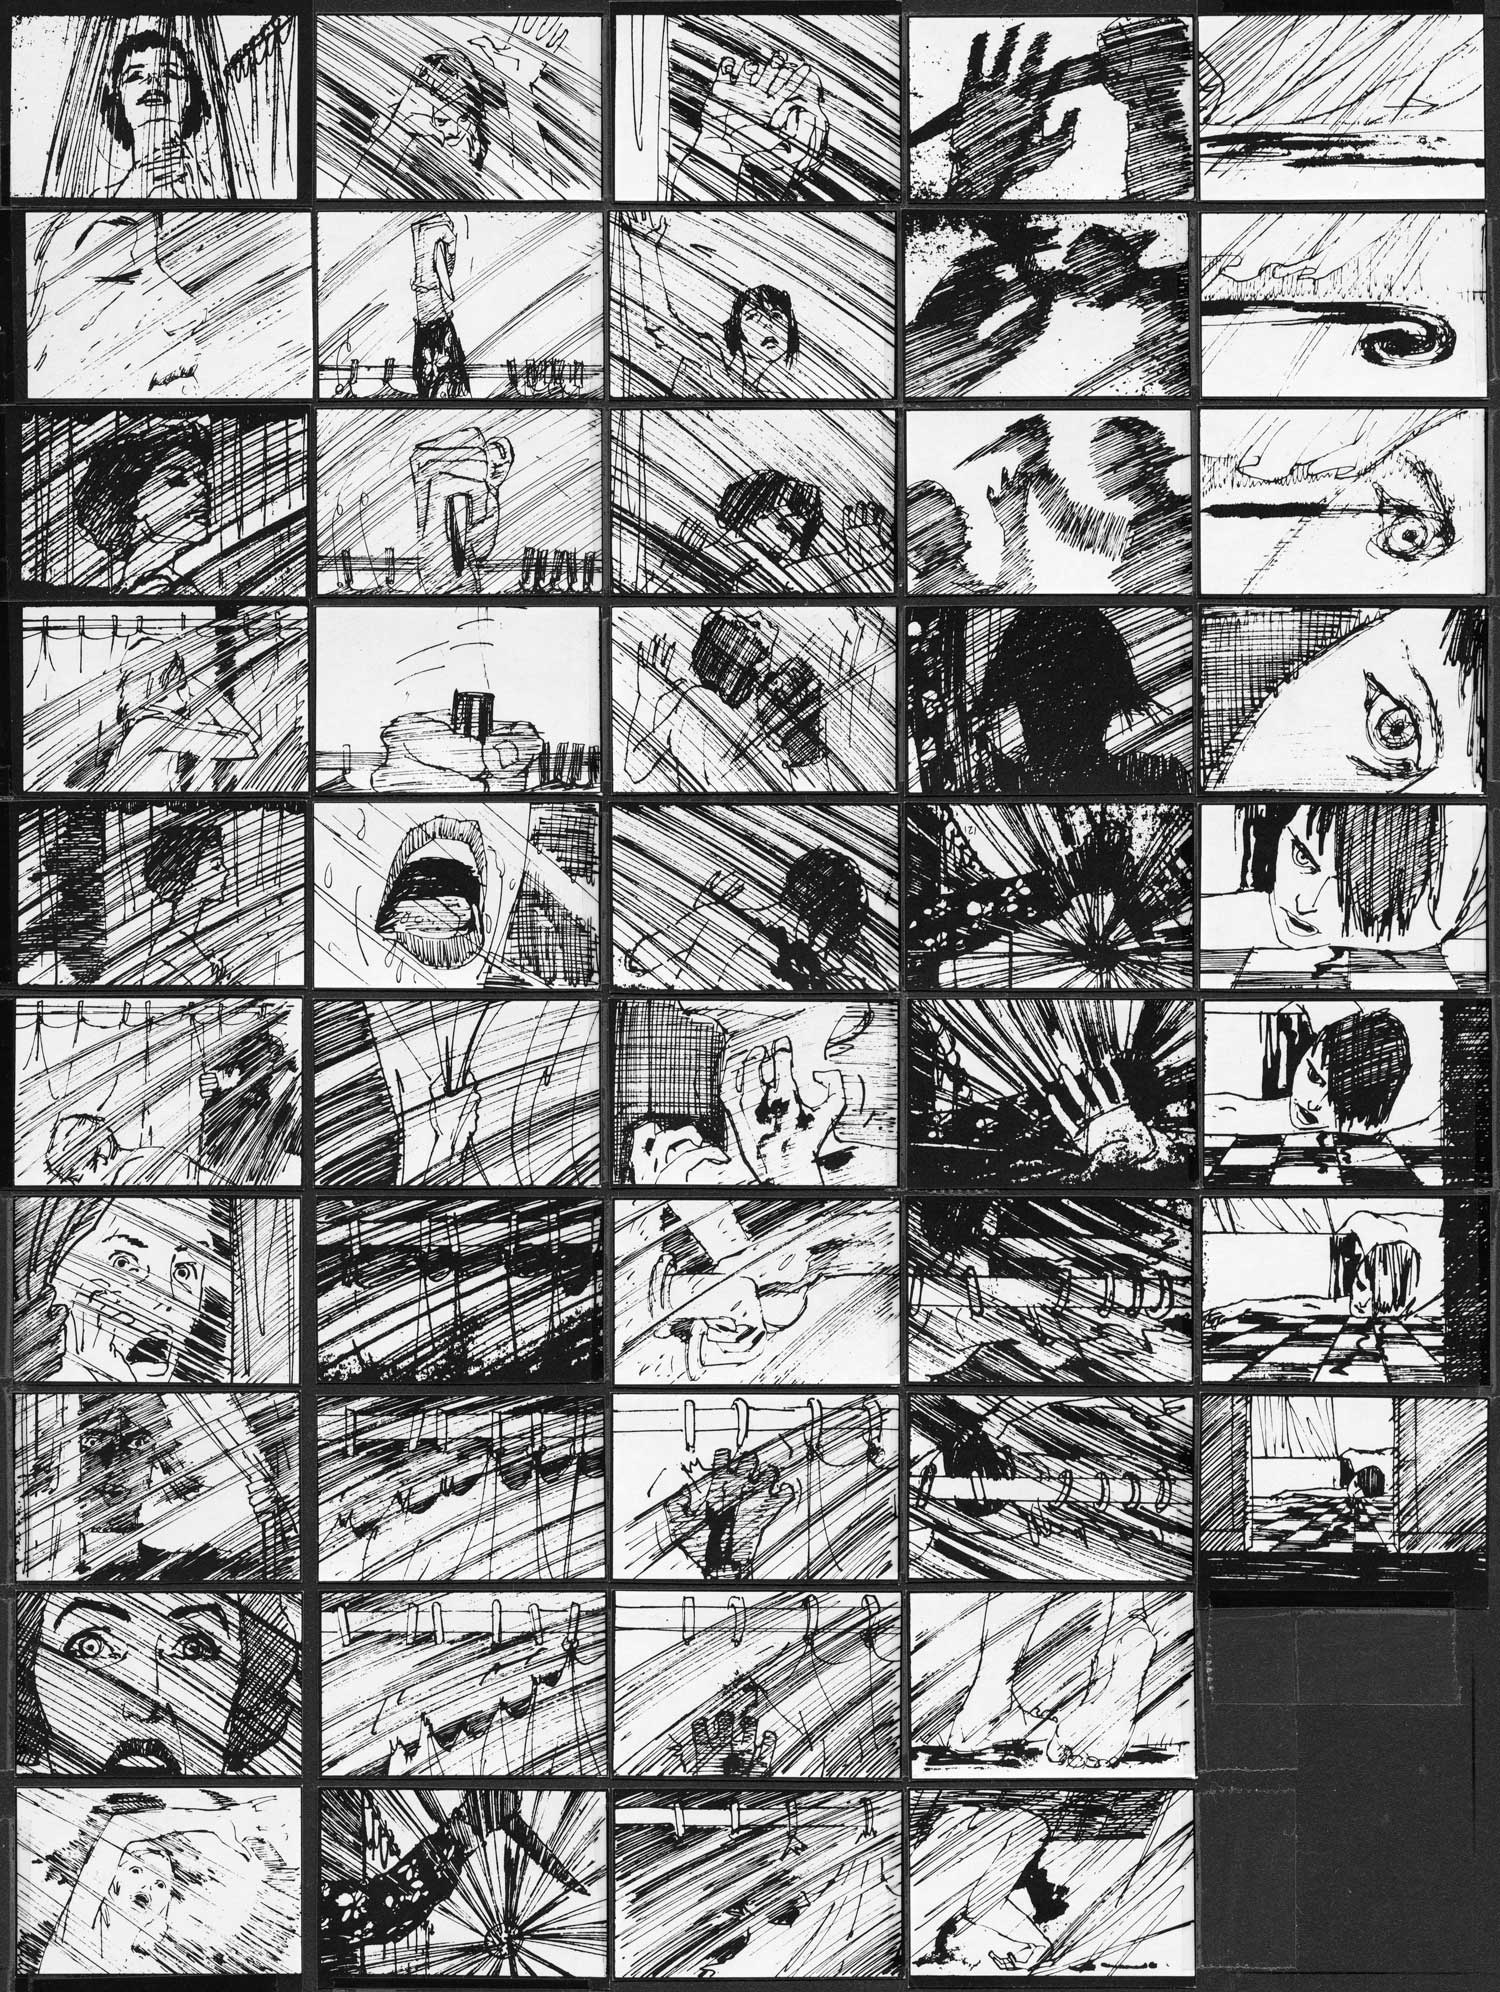 Saul Bass reunited with Hitchcock for the opening titles for PSYCHO, as well as crafting these storyboards for the shower sequence.